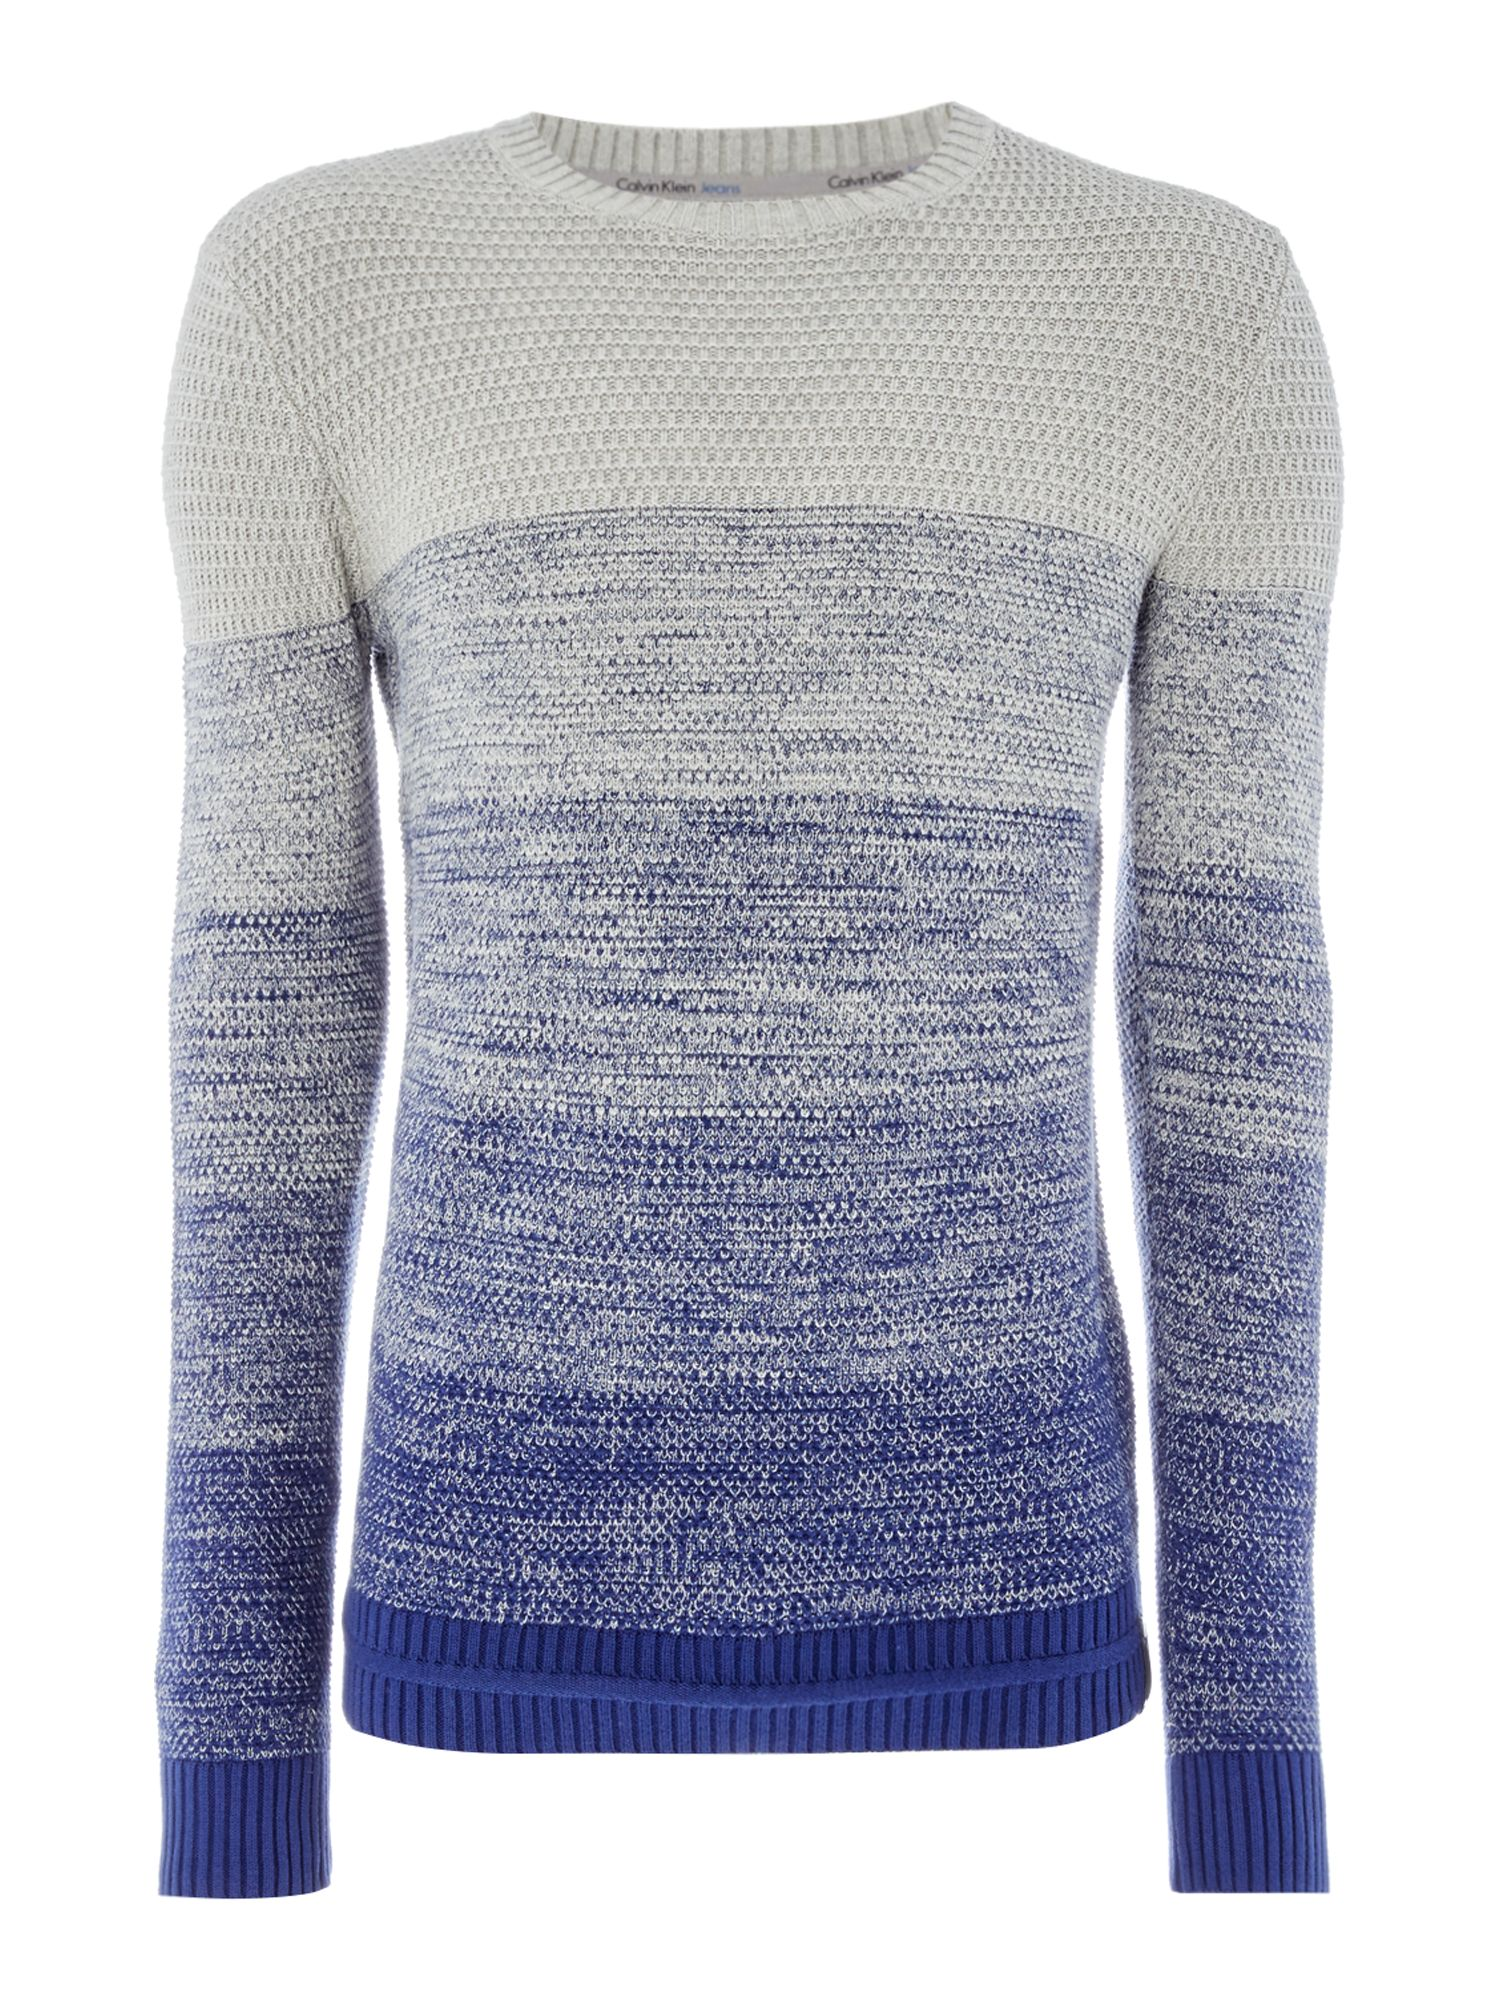 Men's Calvin Klein Soreol Colourblock Sweater, Blue